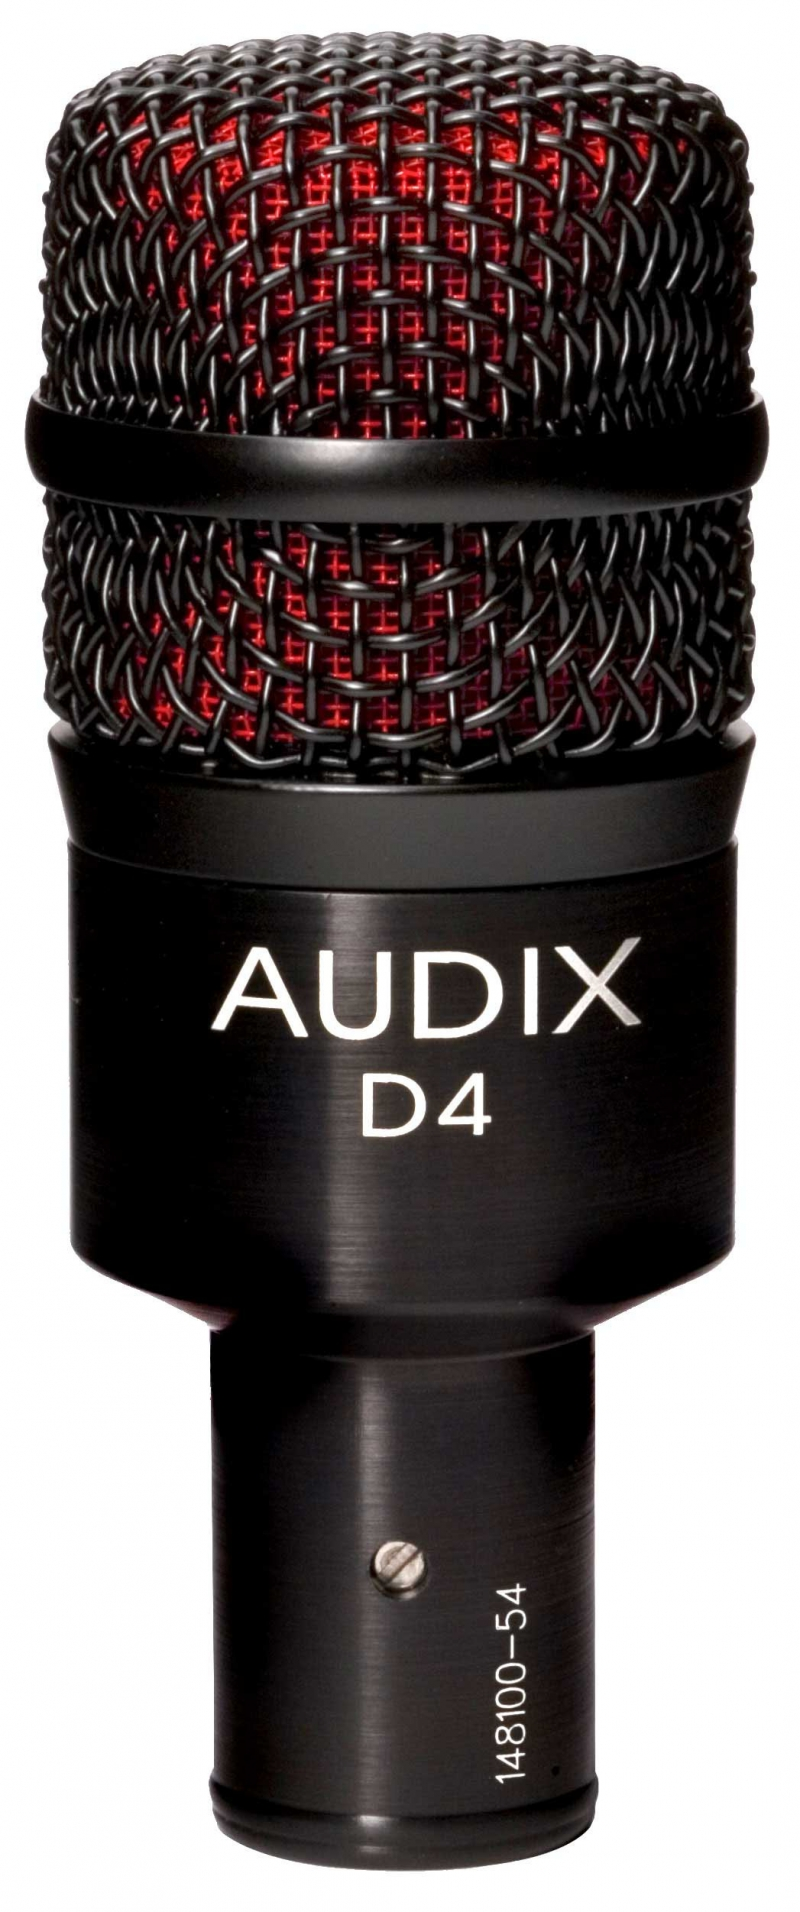 Audix D4 Clip-on Percussion Microphone